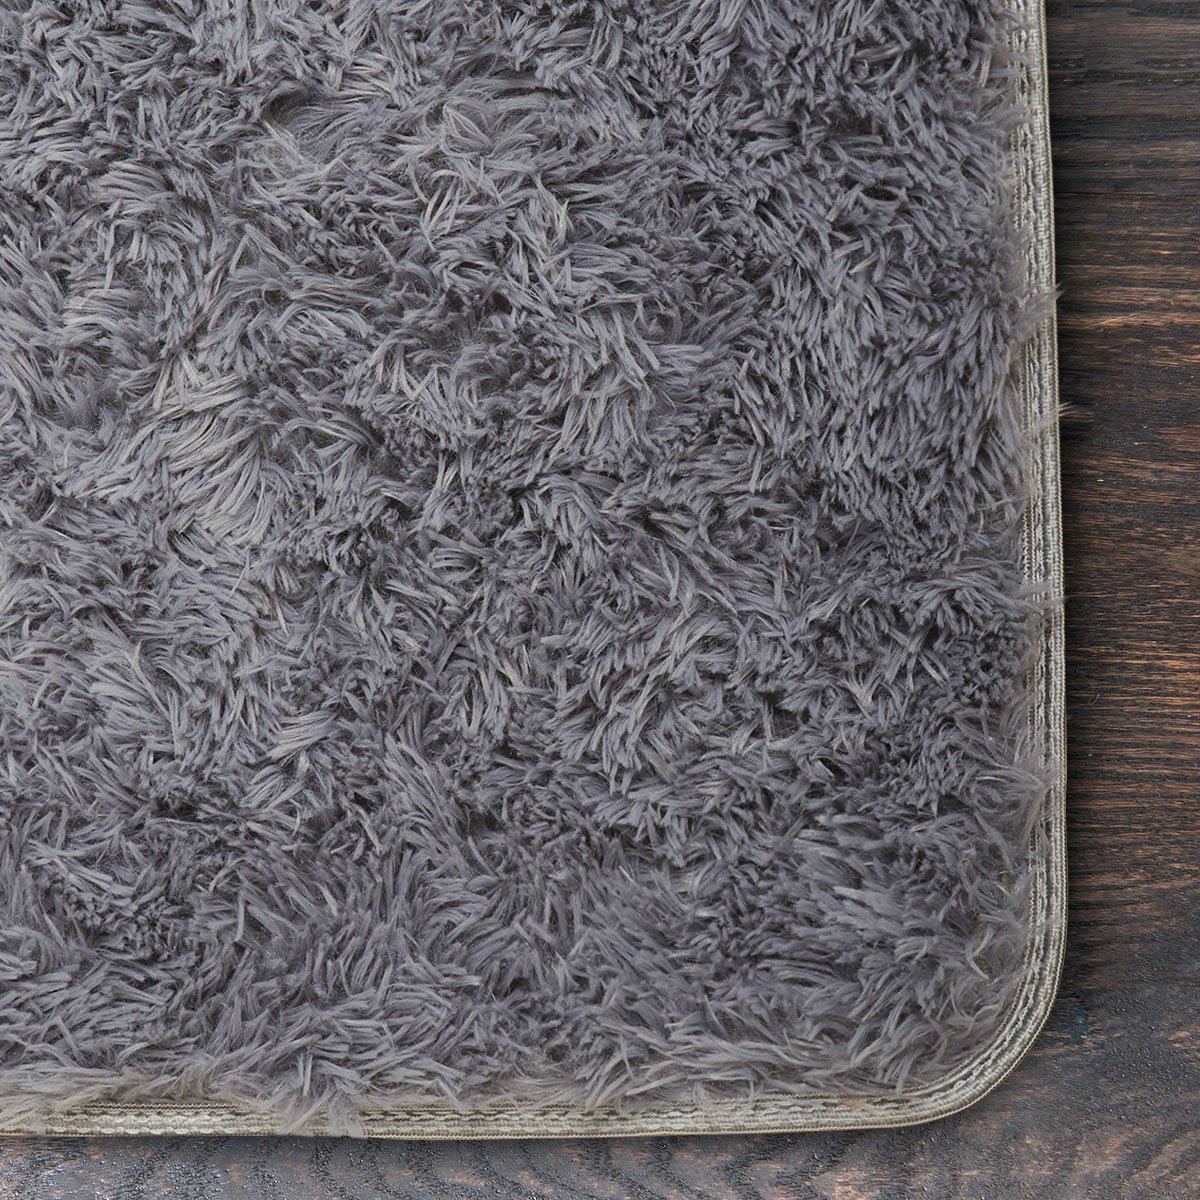 Supmaker Non-Slip Soft Area Rugs for all Seasons and any Style of Home, Great Decorative Rug / Carpet for Home Decorate, Children Play, Women yoga etc. (Color: Gray)